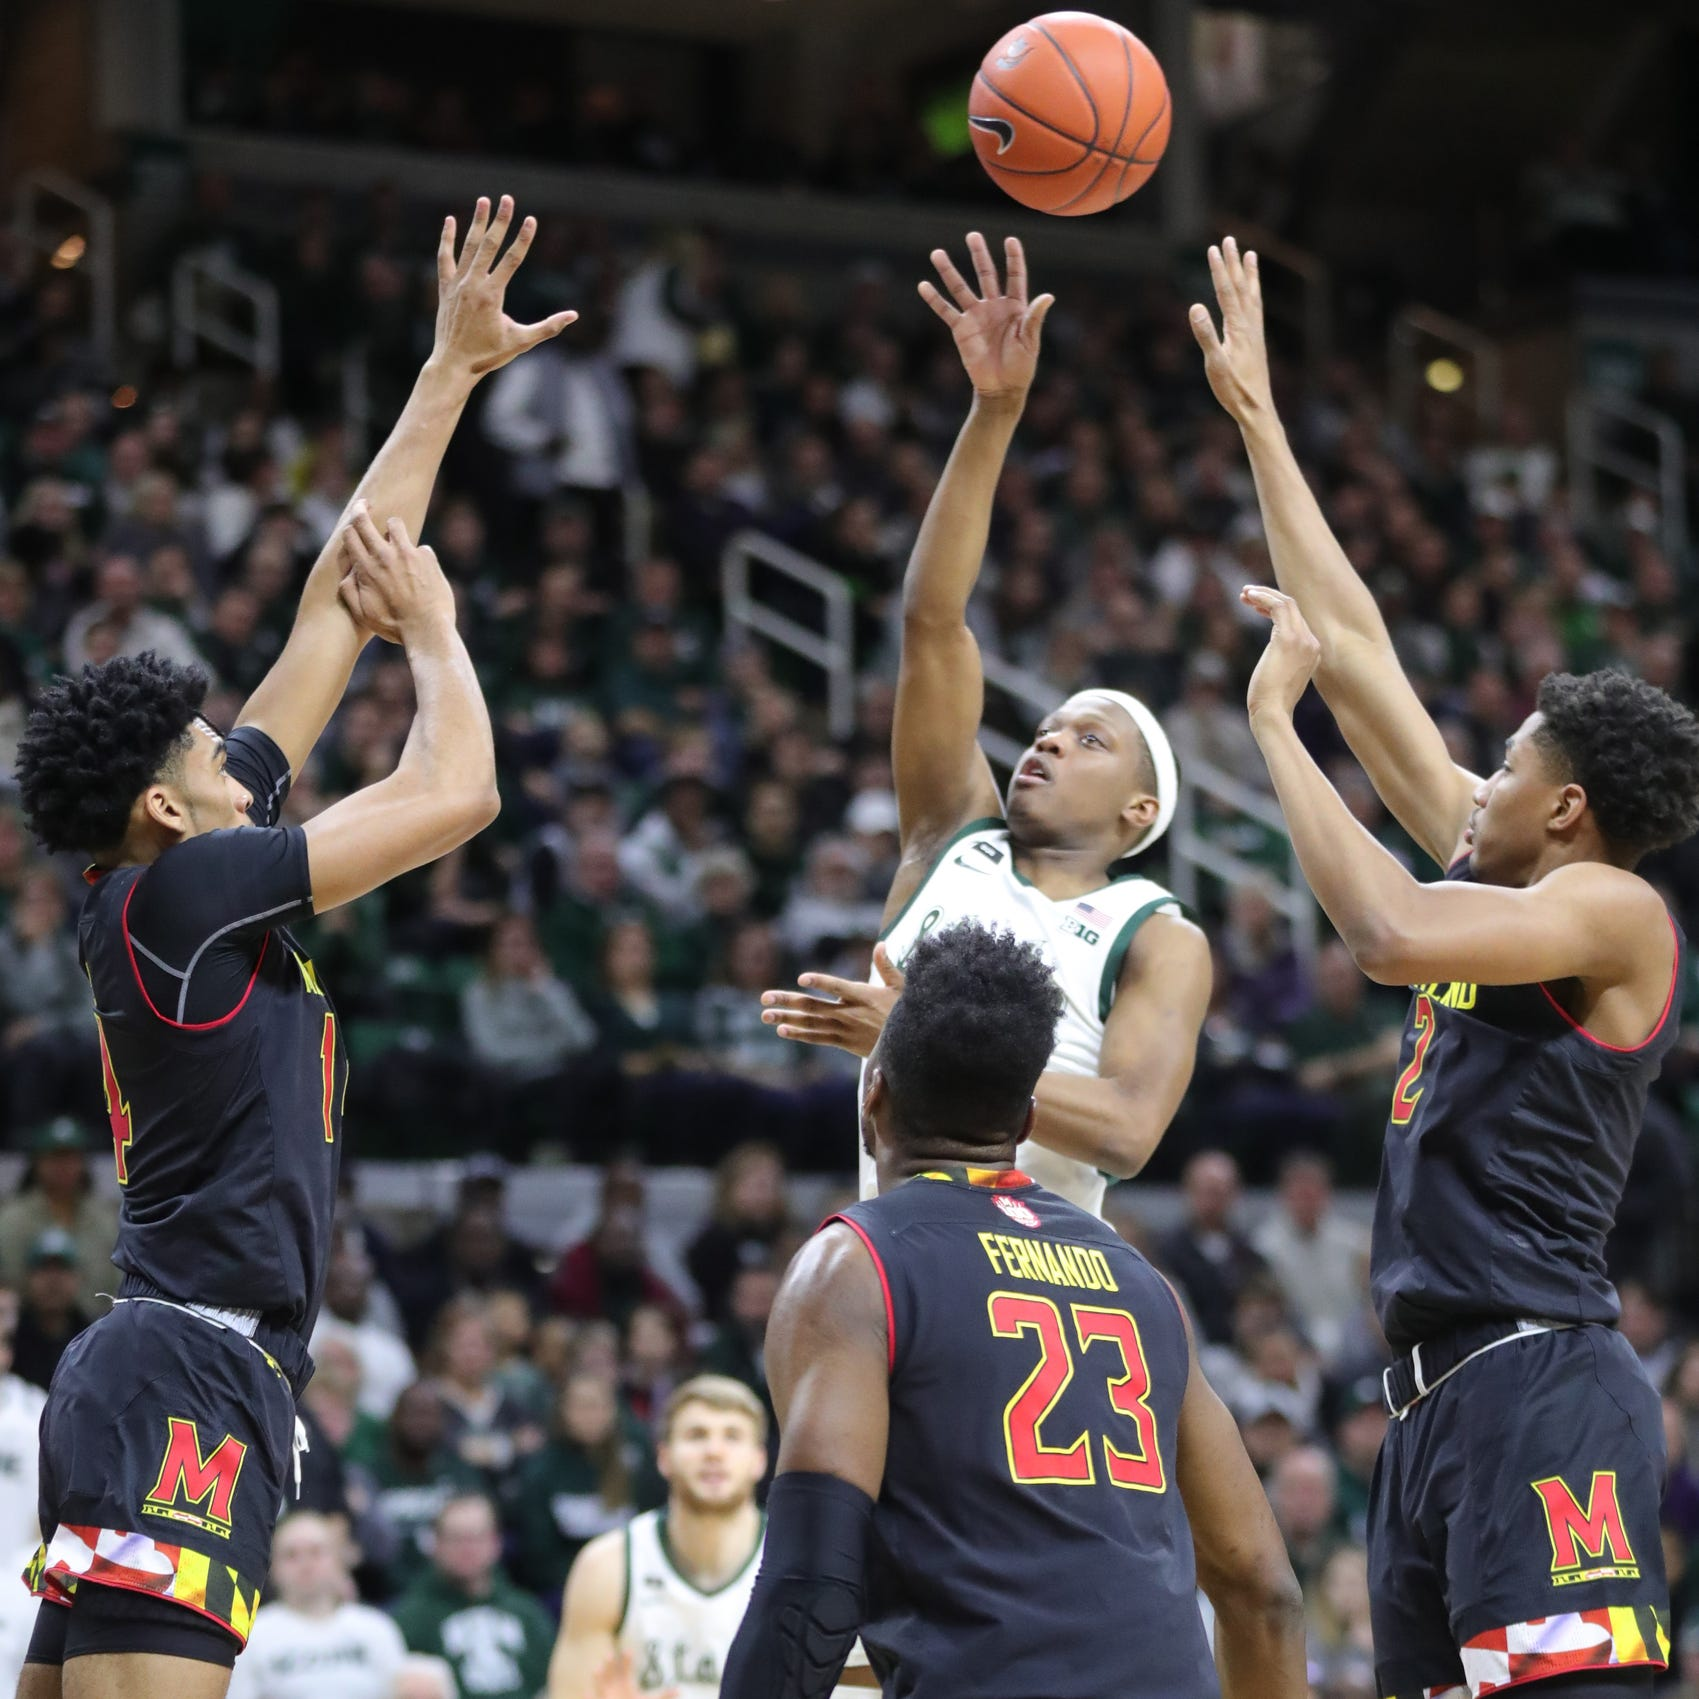 Michigan State topples Maryland despite stars struggling. Why it matters